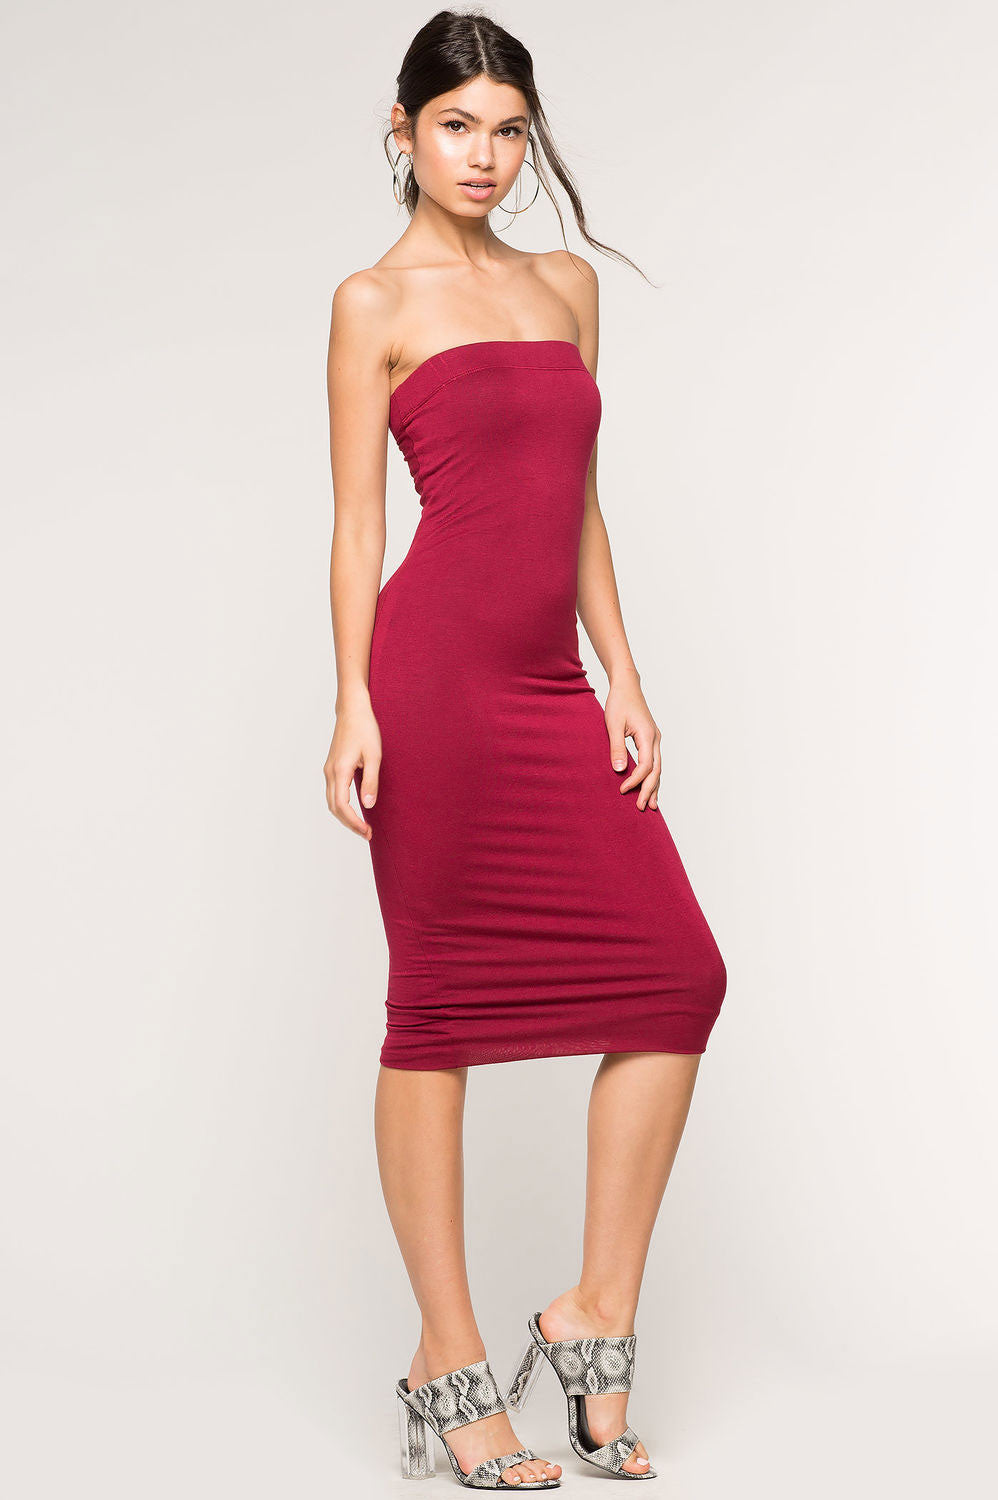 Women's strapless bodycon midi jersey casual dress in burgundy wine